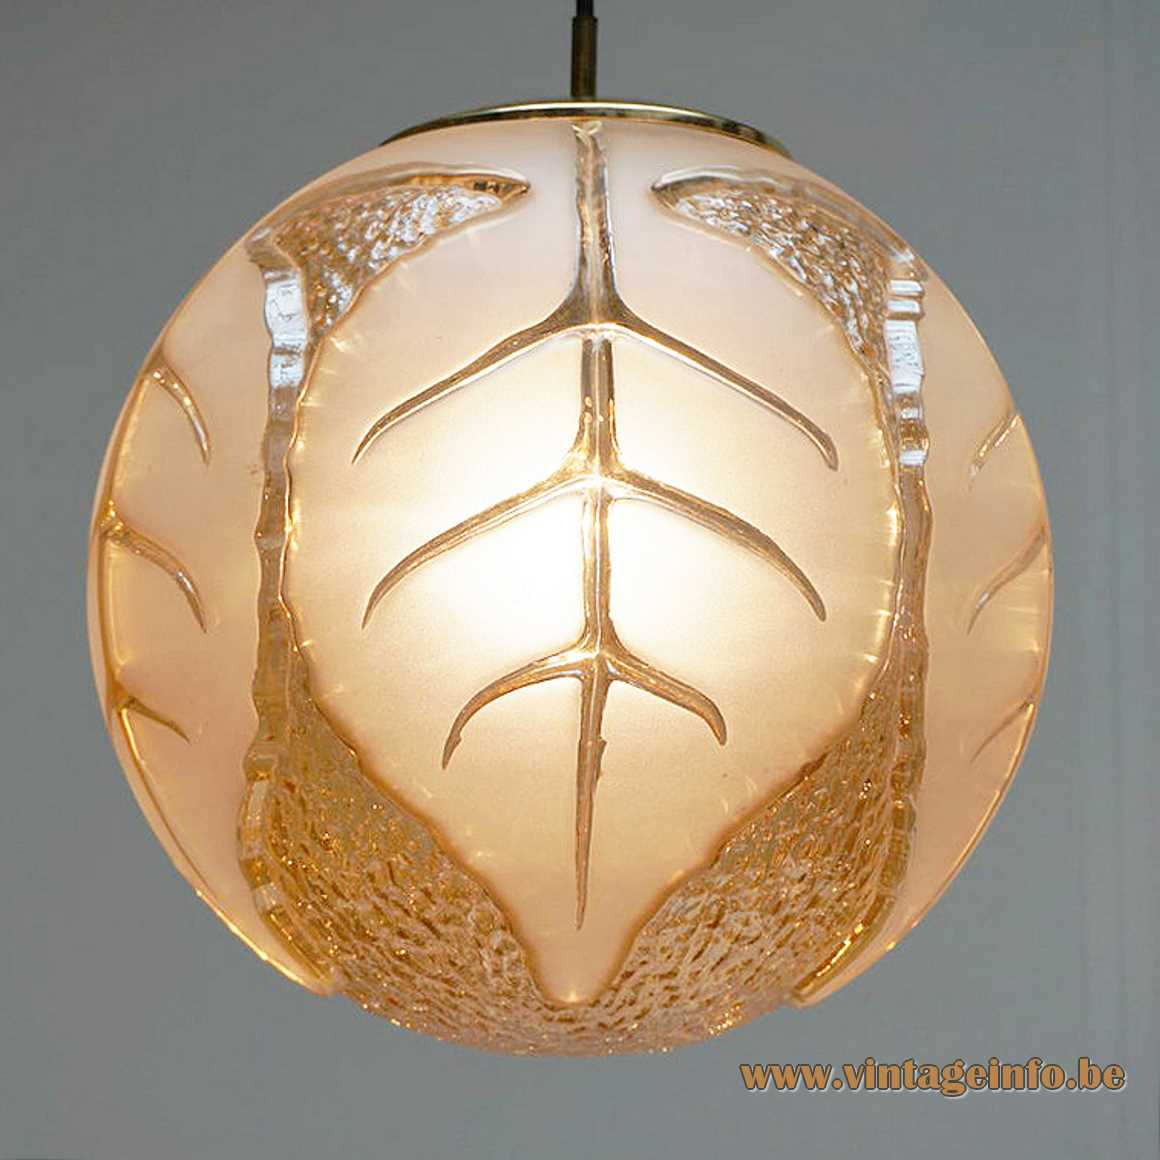 Peill + Putzler globe pendant lamp amber hand blown glass lampshade frosted leaves design 1970s 1980s Germany